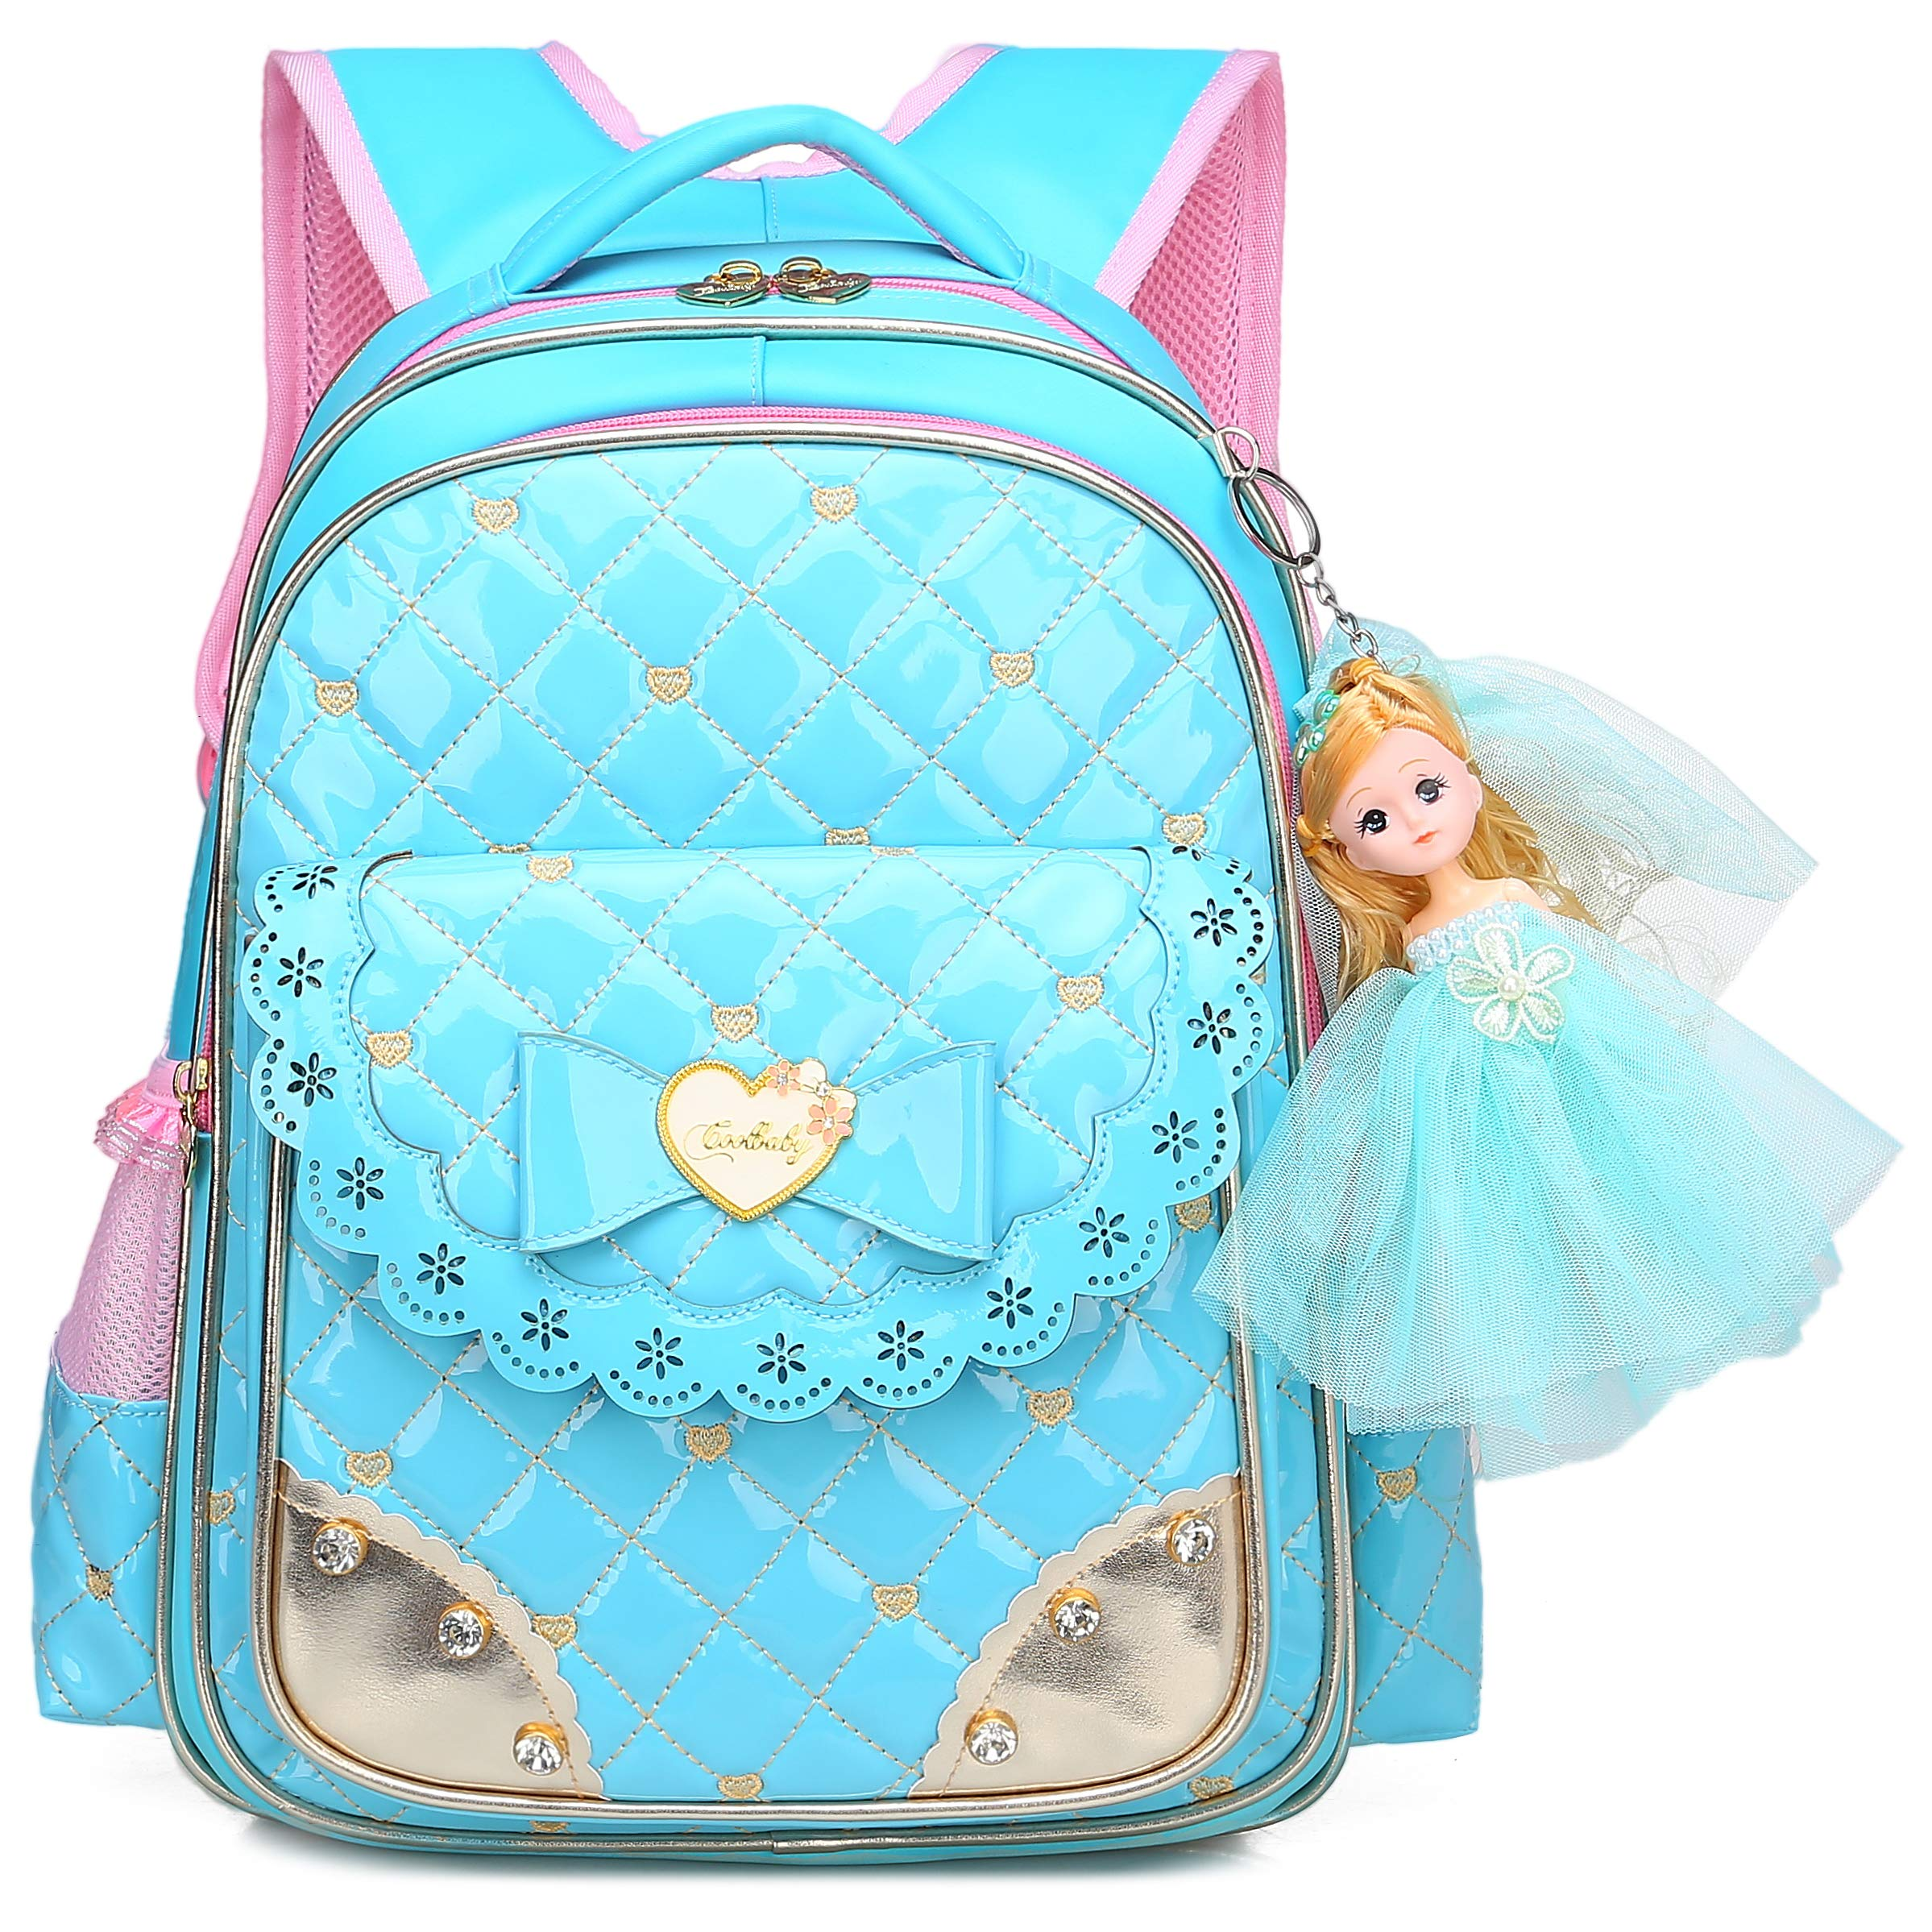 Cute Waterproof Backpacks for Girls Princess Style Schoolbag Bookbags (Large, Blue)